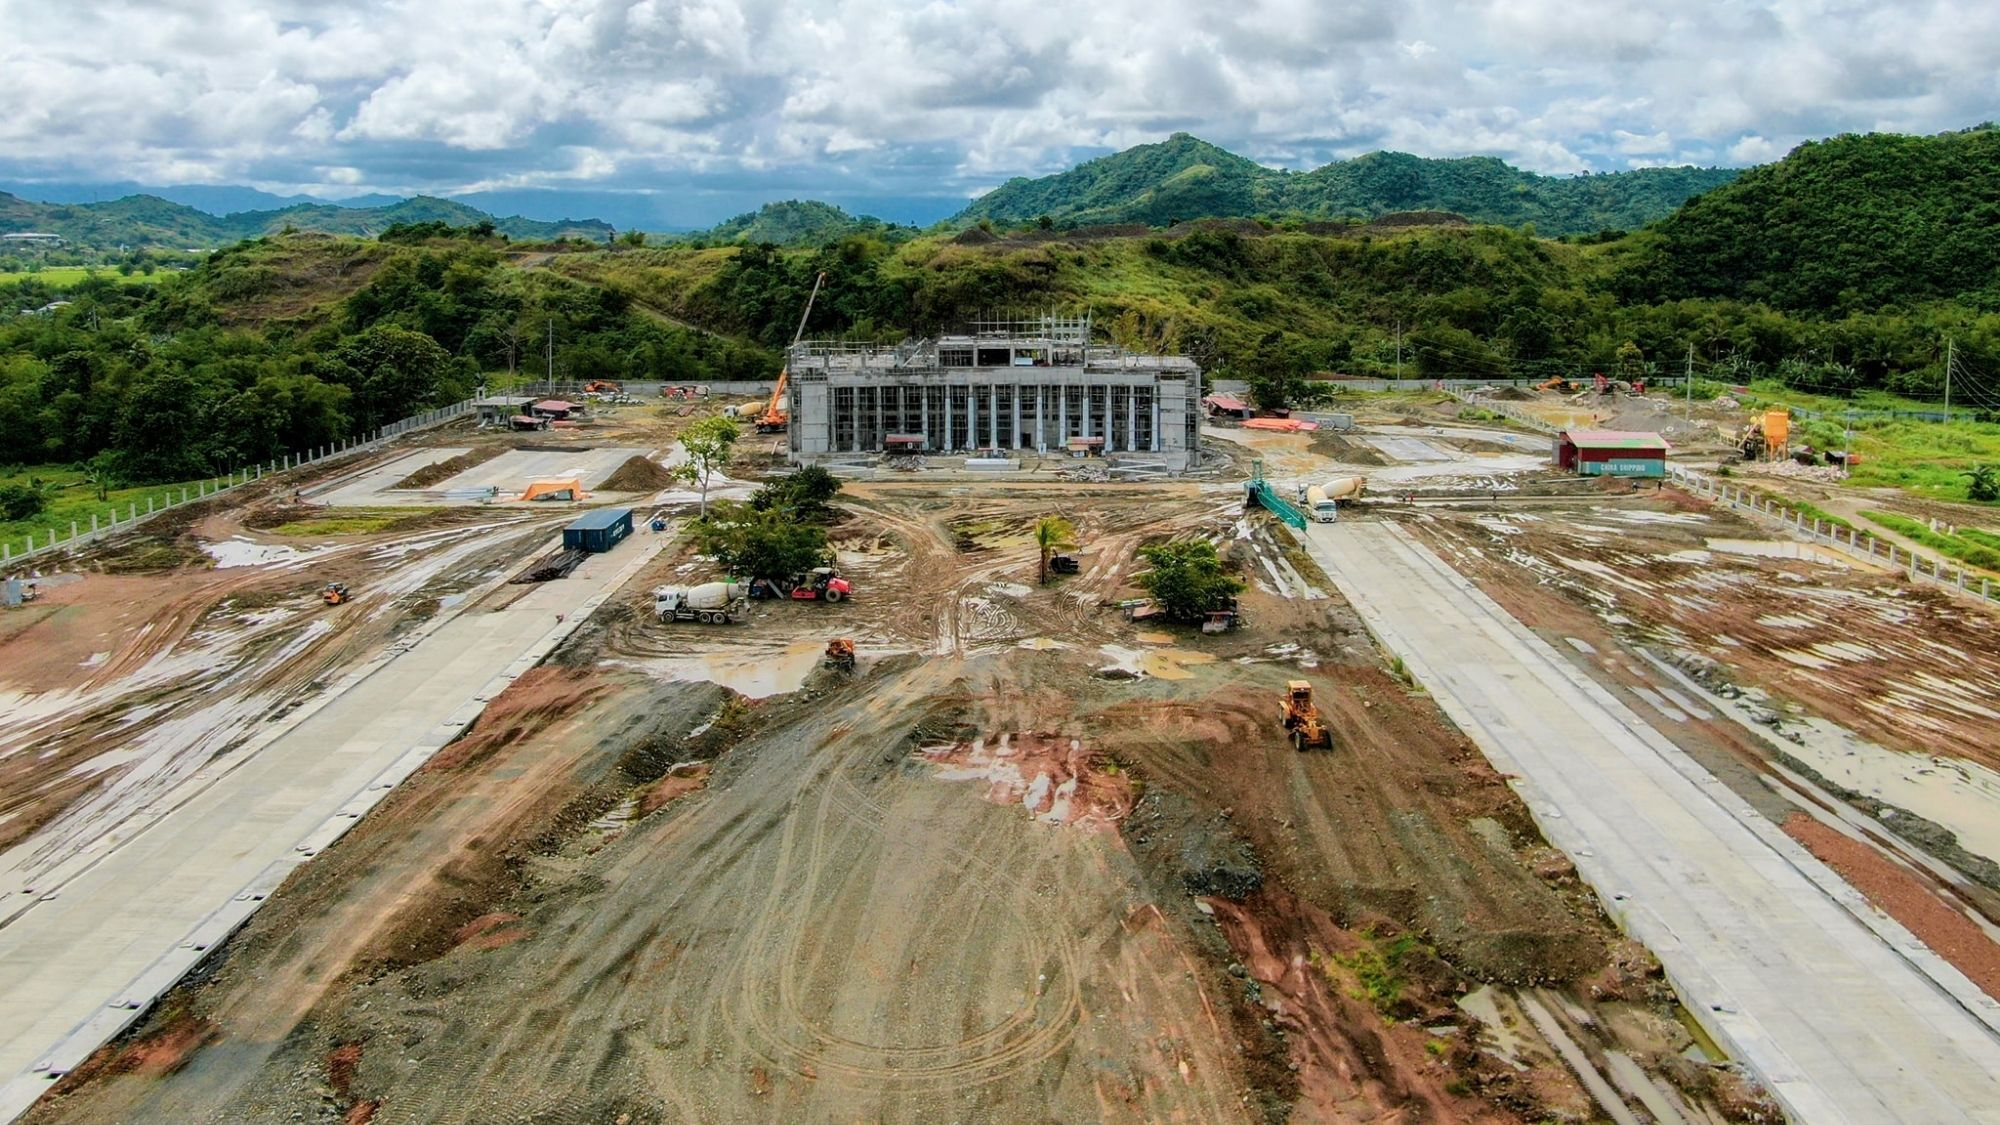 New Leyte Capitol: A Necessity